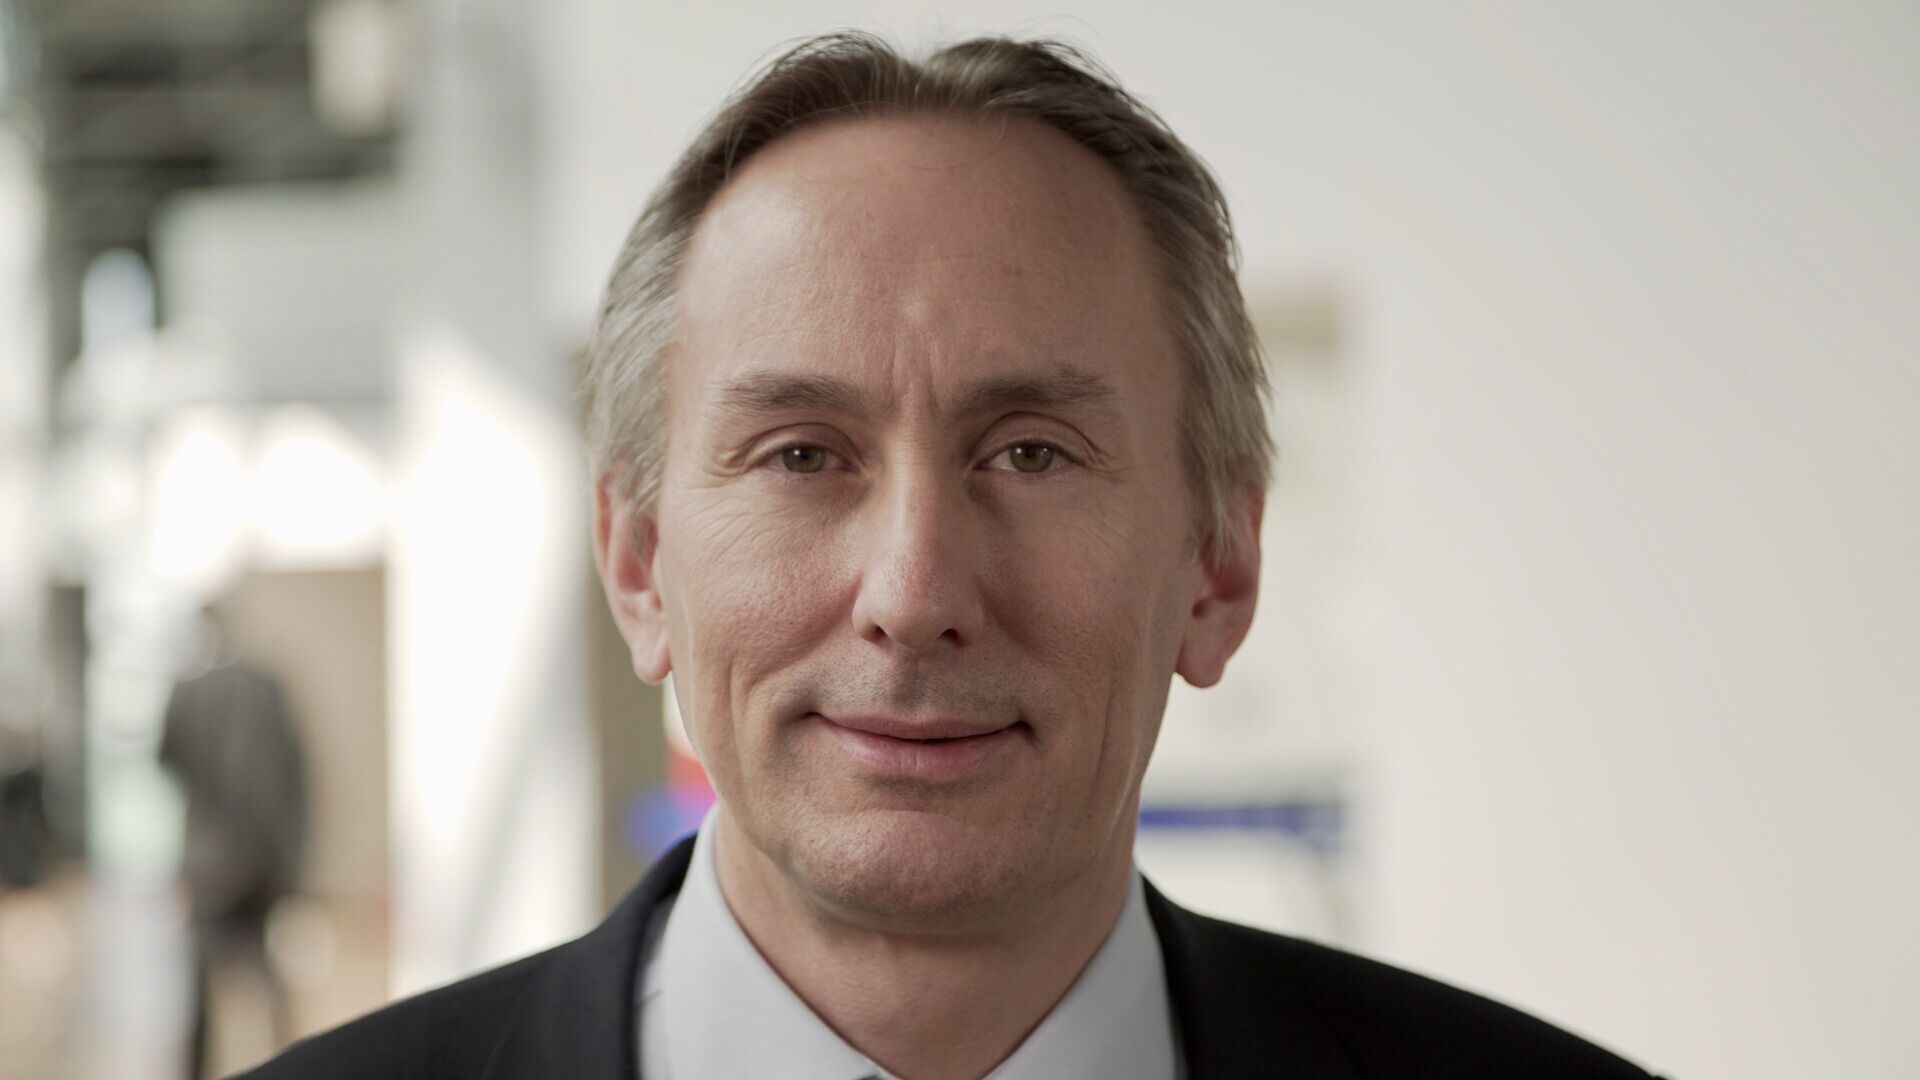 Robert Storey, EHRA 2019 – Patients with Atrial Fibrillation and Acute Coronary Syndrome